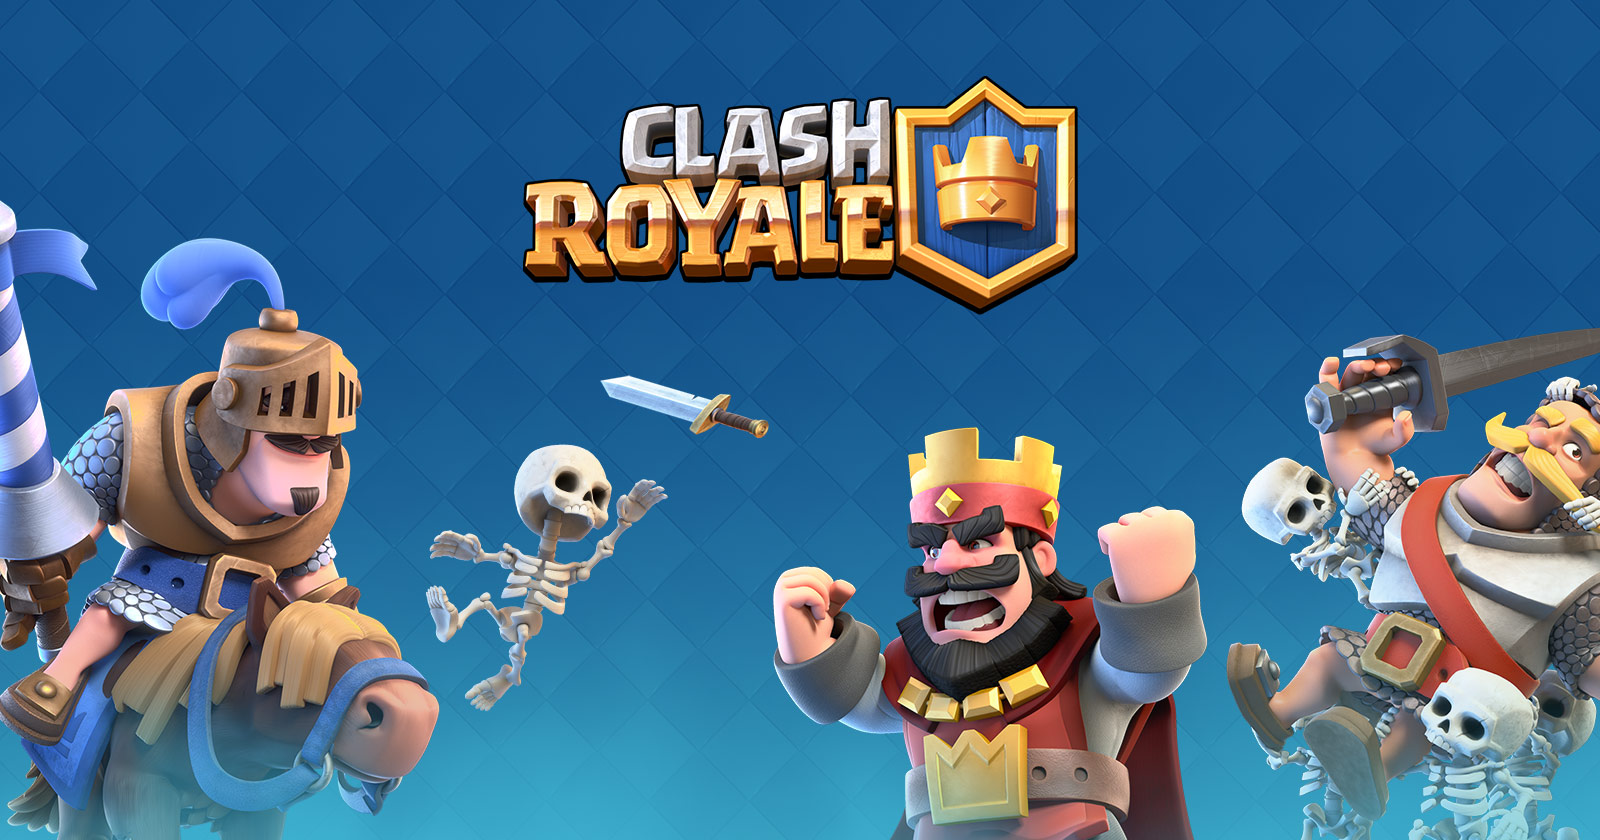 5 Reasons Why You Want to Quit Clash Royale